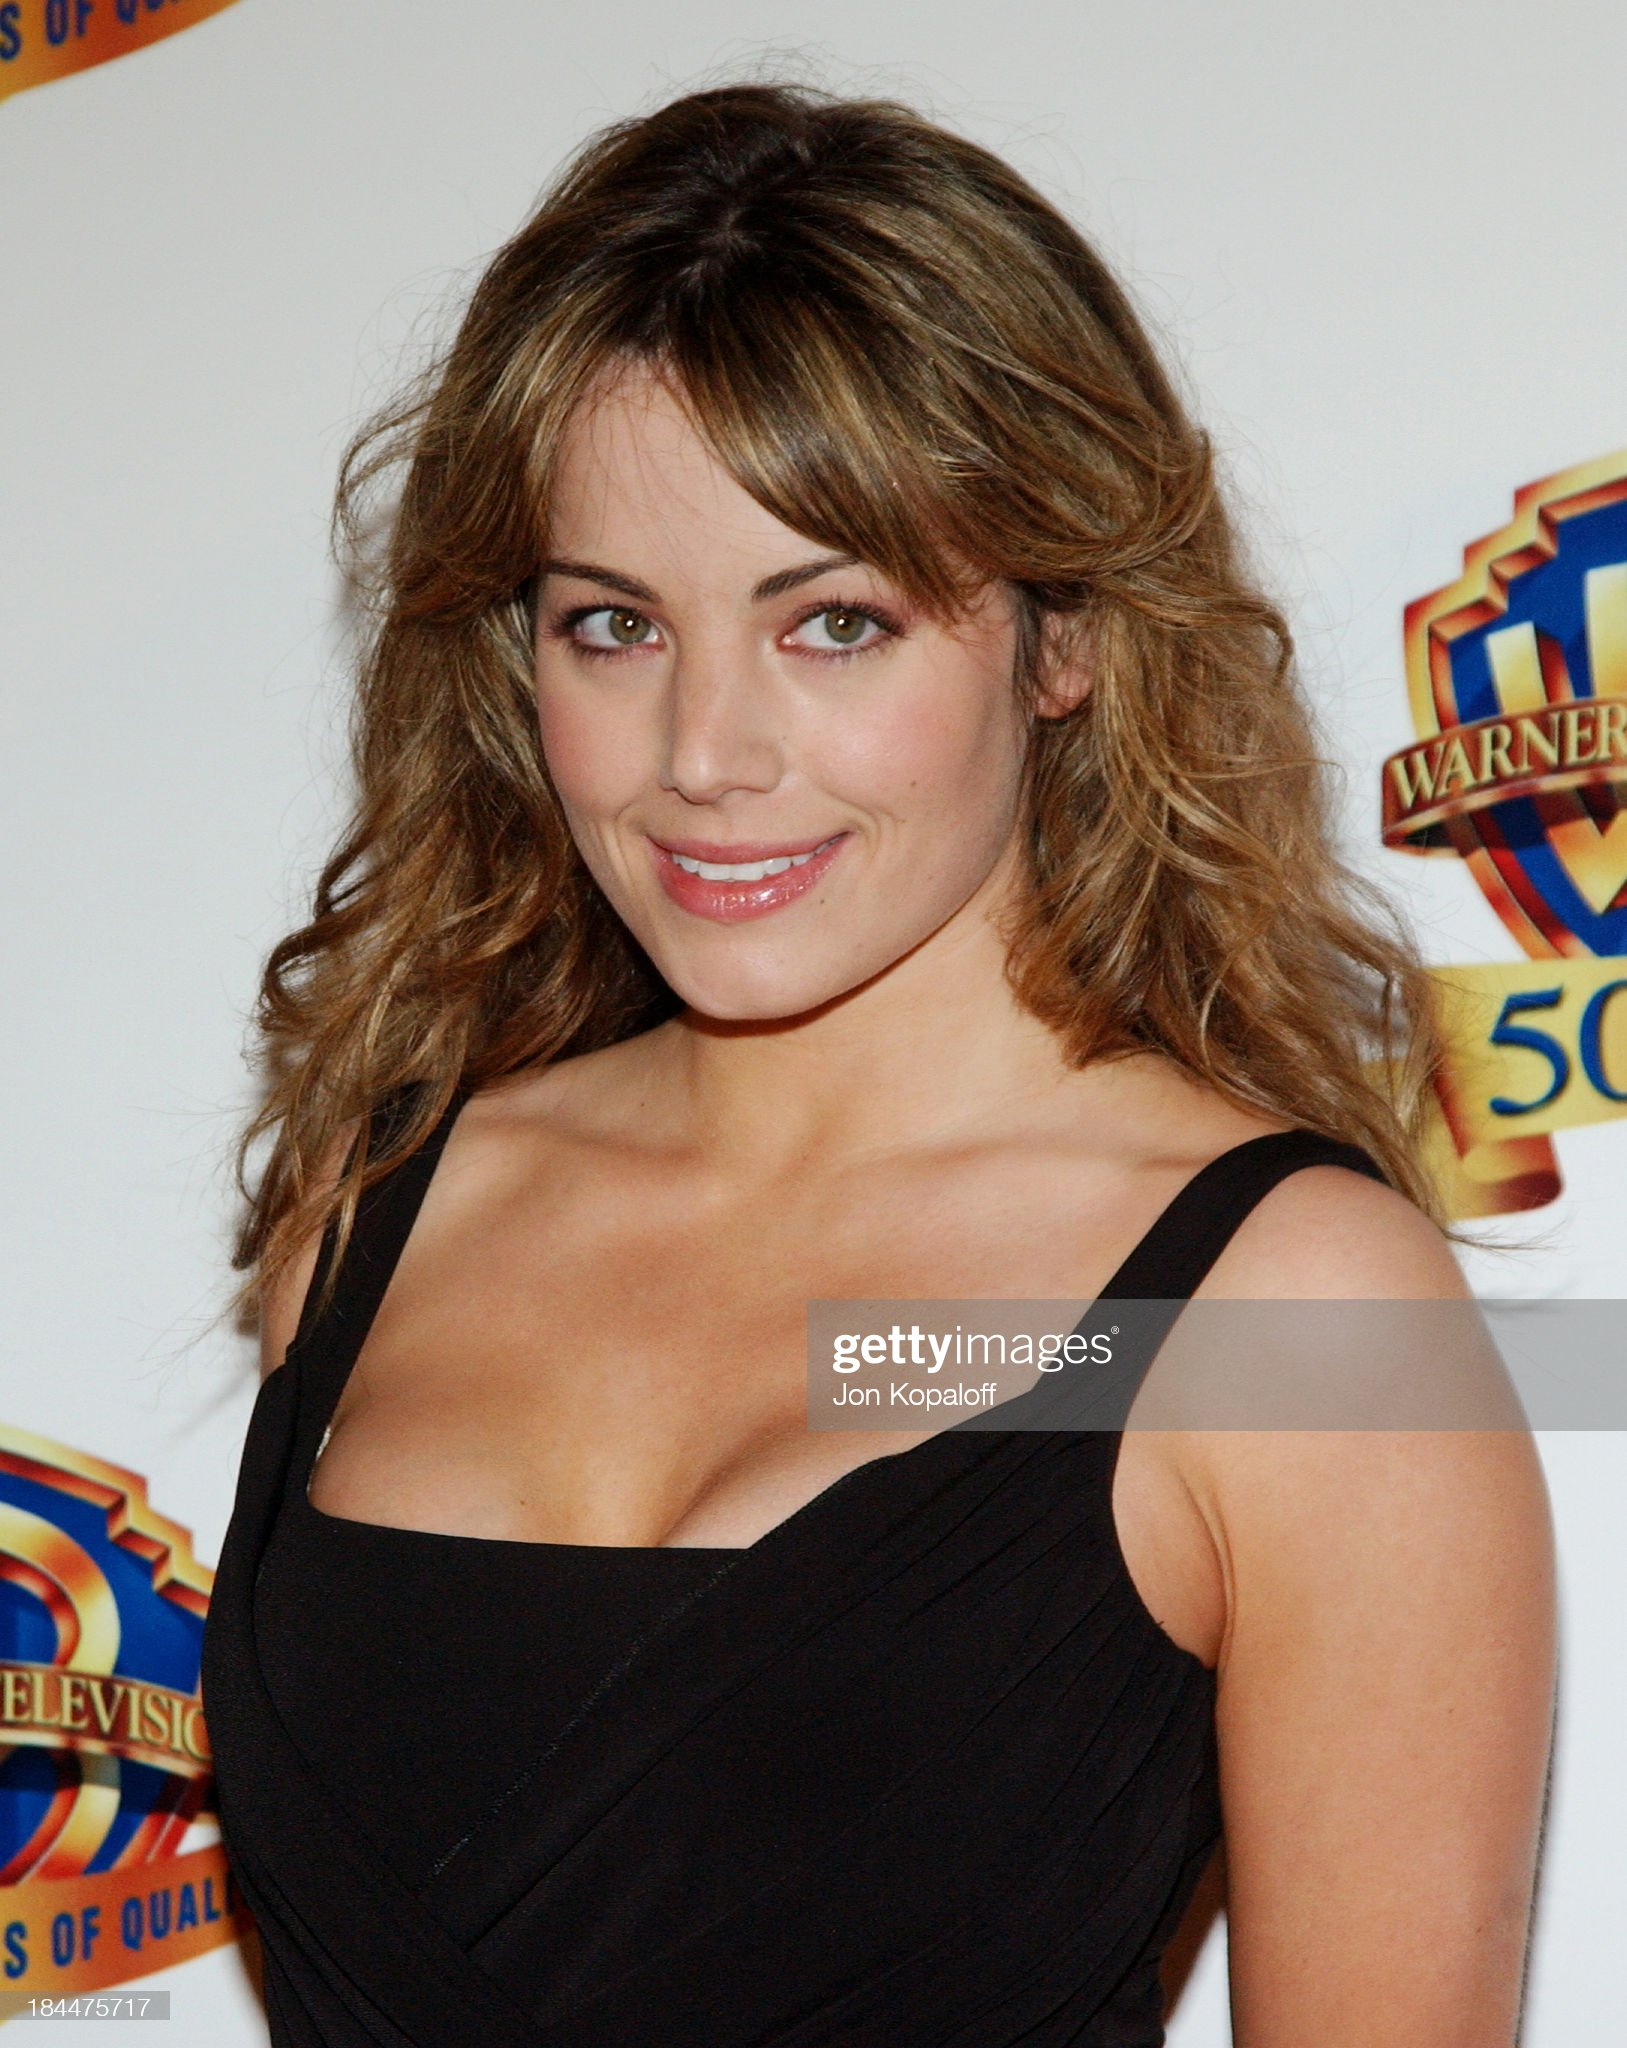 Top 80 Famosas Foroalturas Erica-durance-during-warner-bros-television-and-warner-home-video-50-picture-id184475717?s=2048x2048